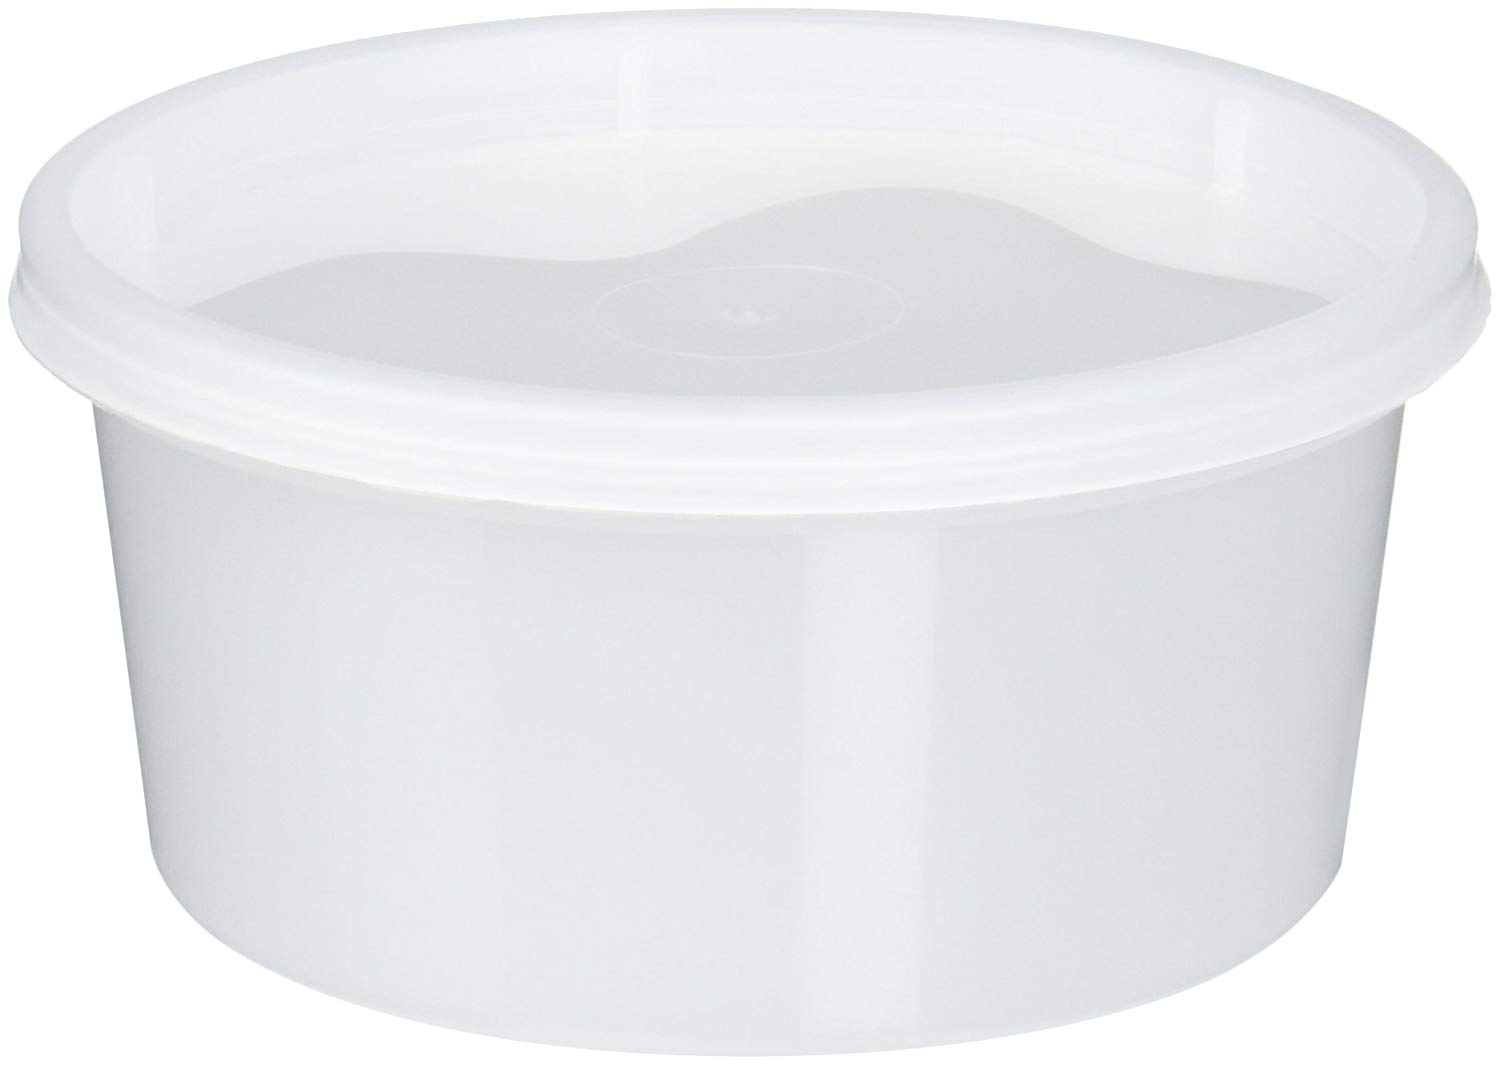 Freshware 36-Pack 16 oz Plastic Food Storage Containers with Airtight Lids